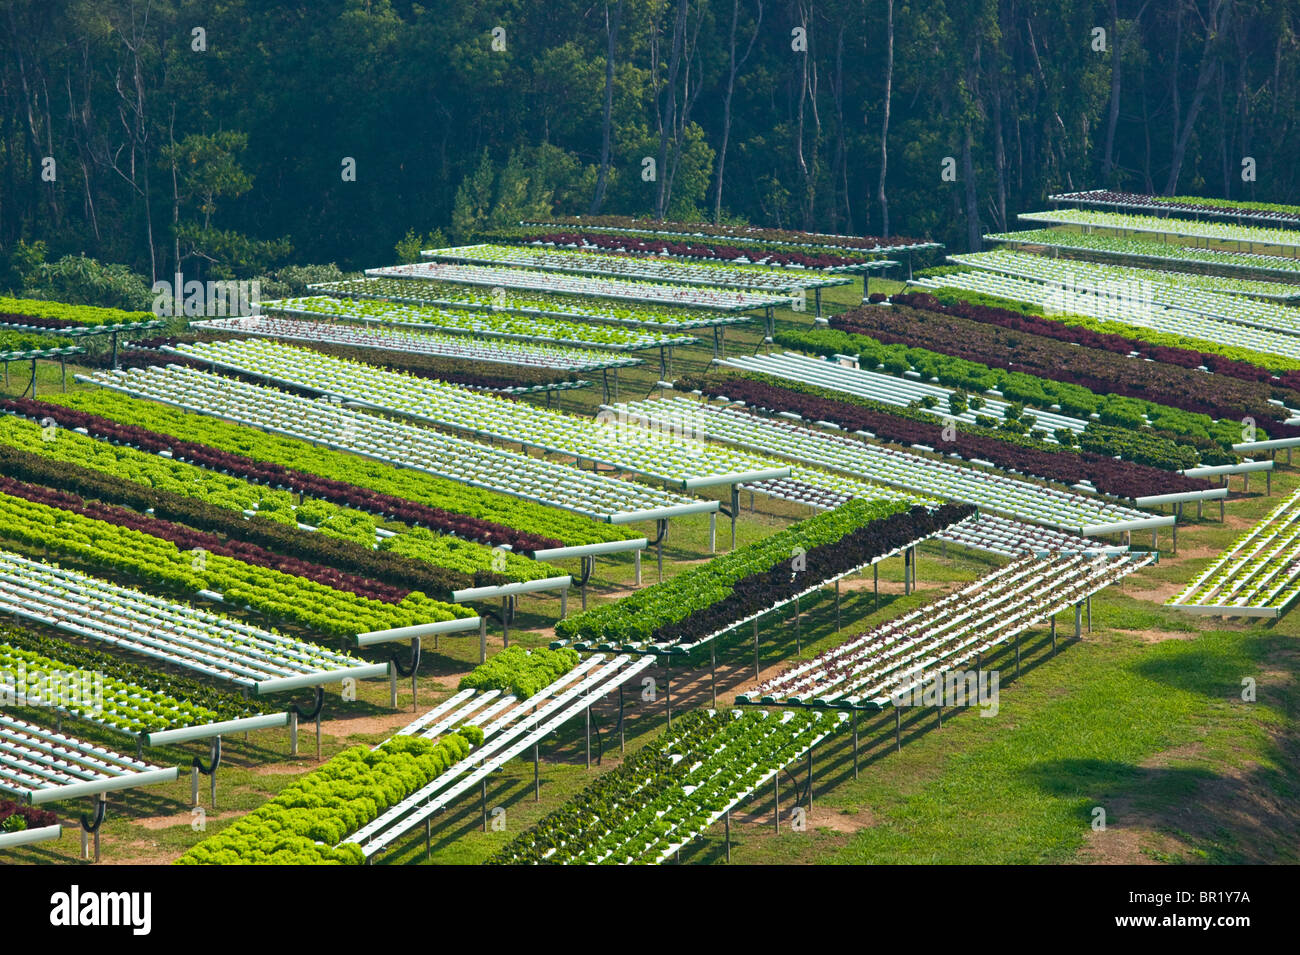 L'Australie, Queensland, Sunshine Coast, Pomona. Les champs en terrasses de ferme. Macrobiotique Photo Stock